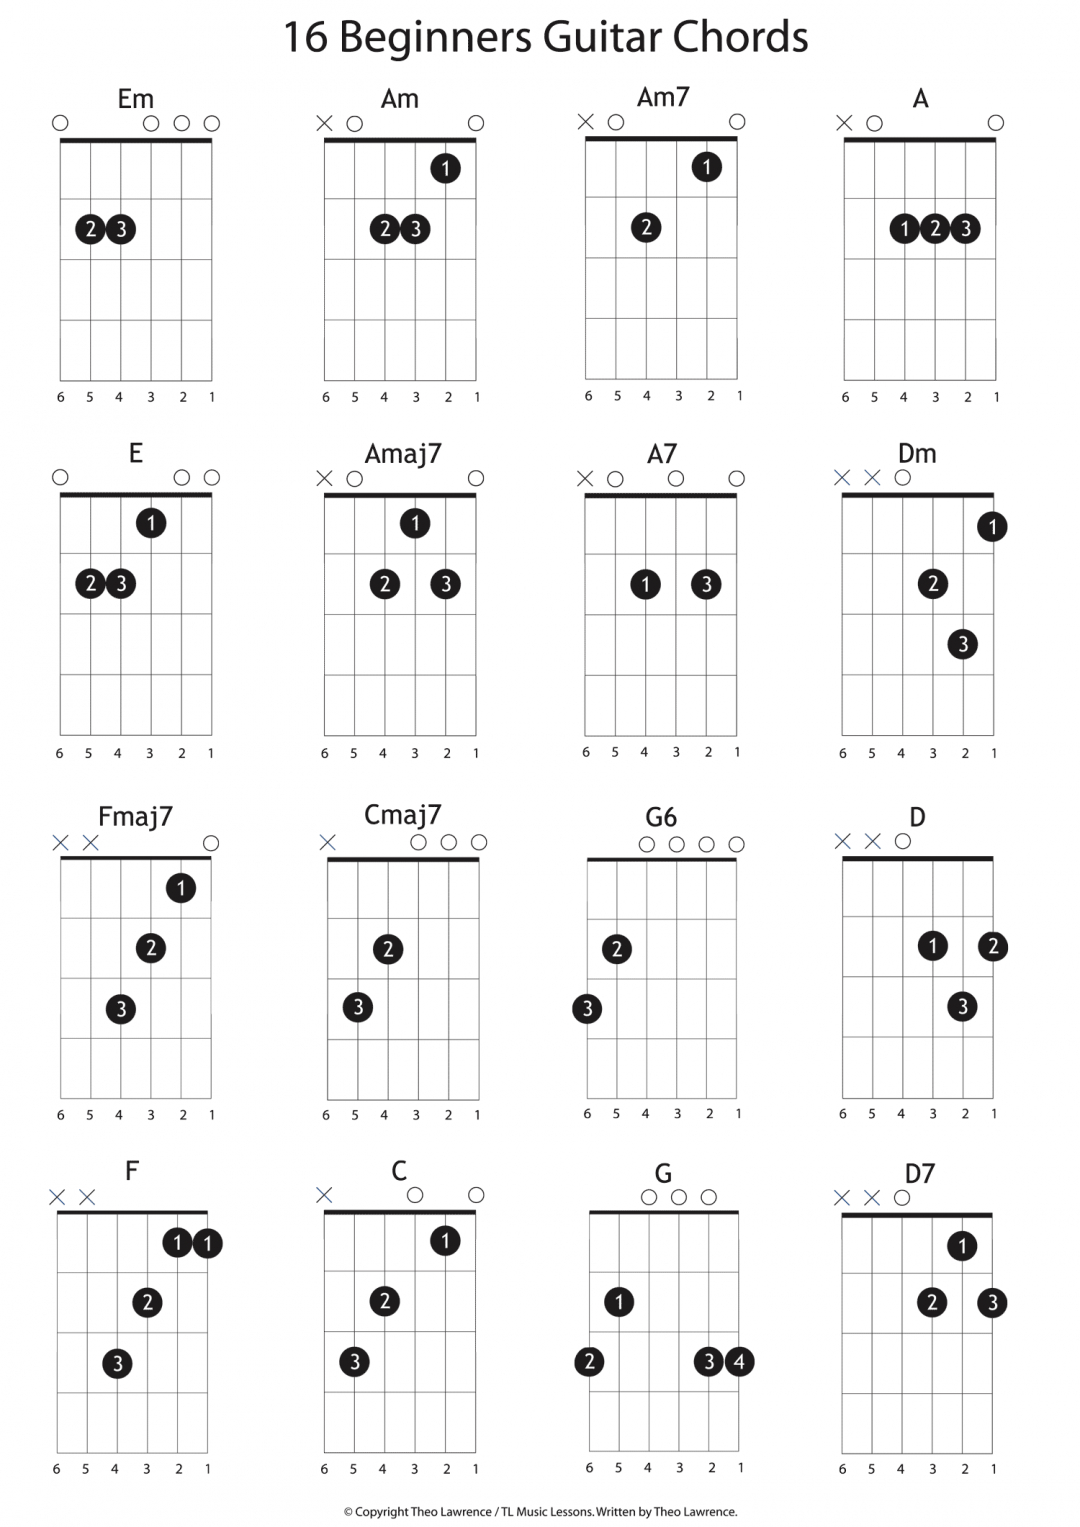 Guitar Chords For Beginners 16 Beginners Guitar Chords Learn Guitar For Free